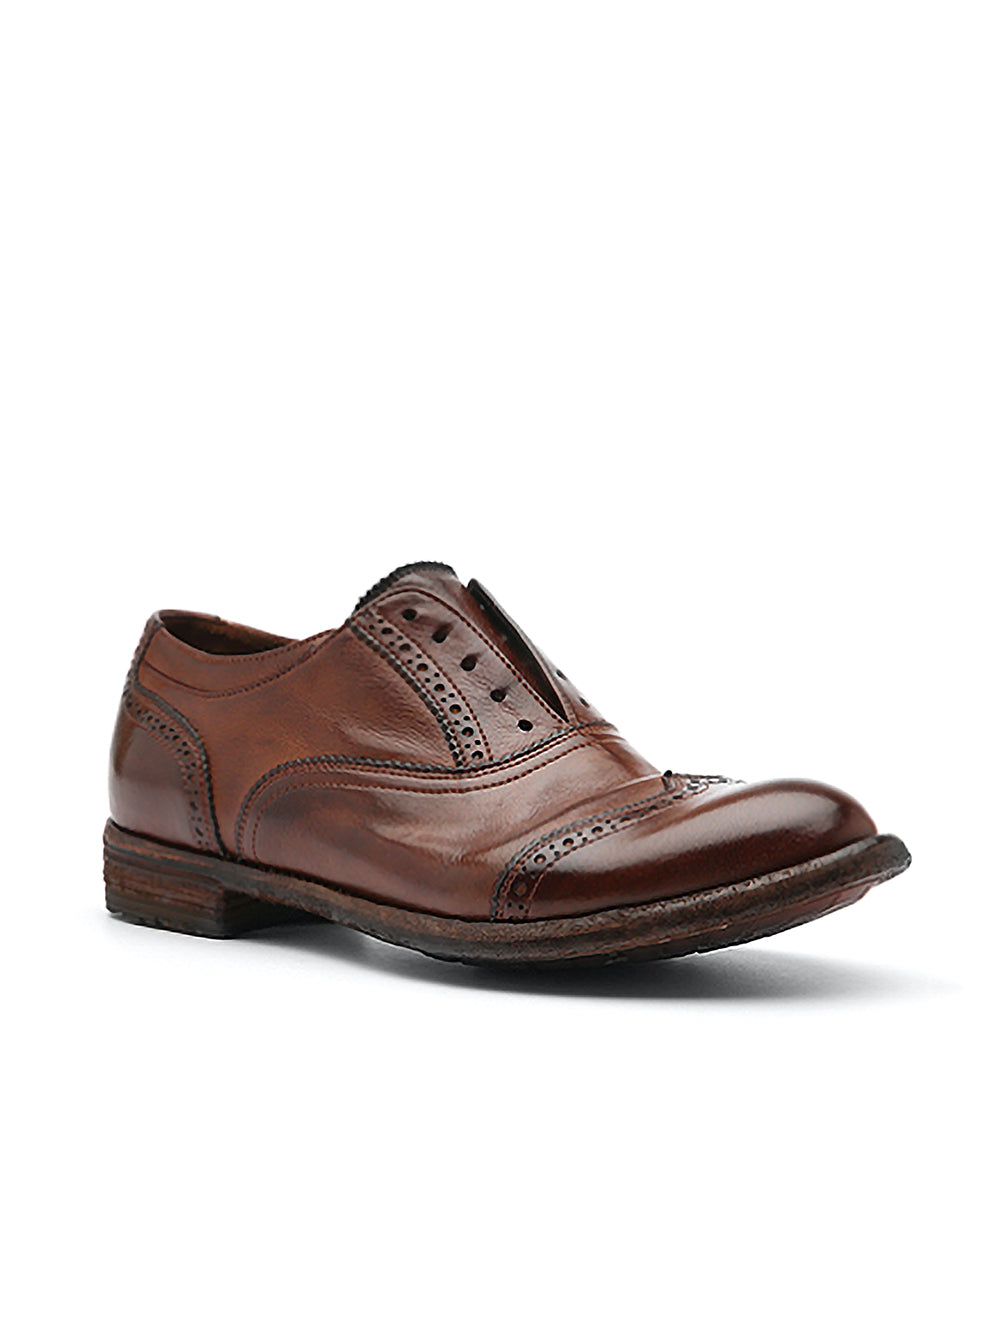 officine creative lexikon oxford in cigar